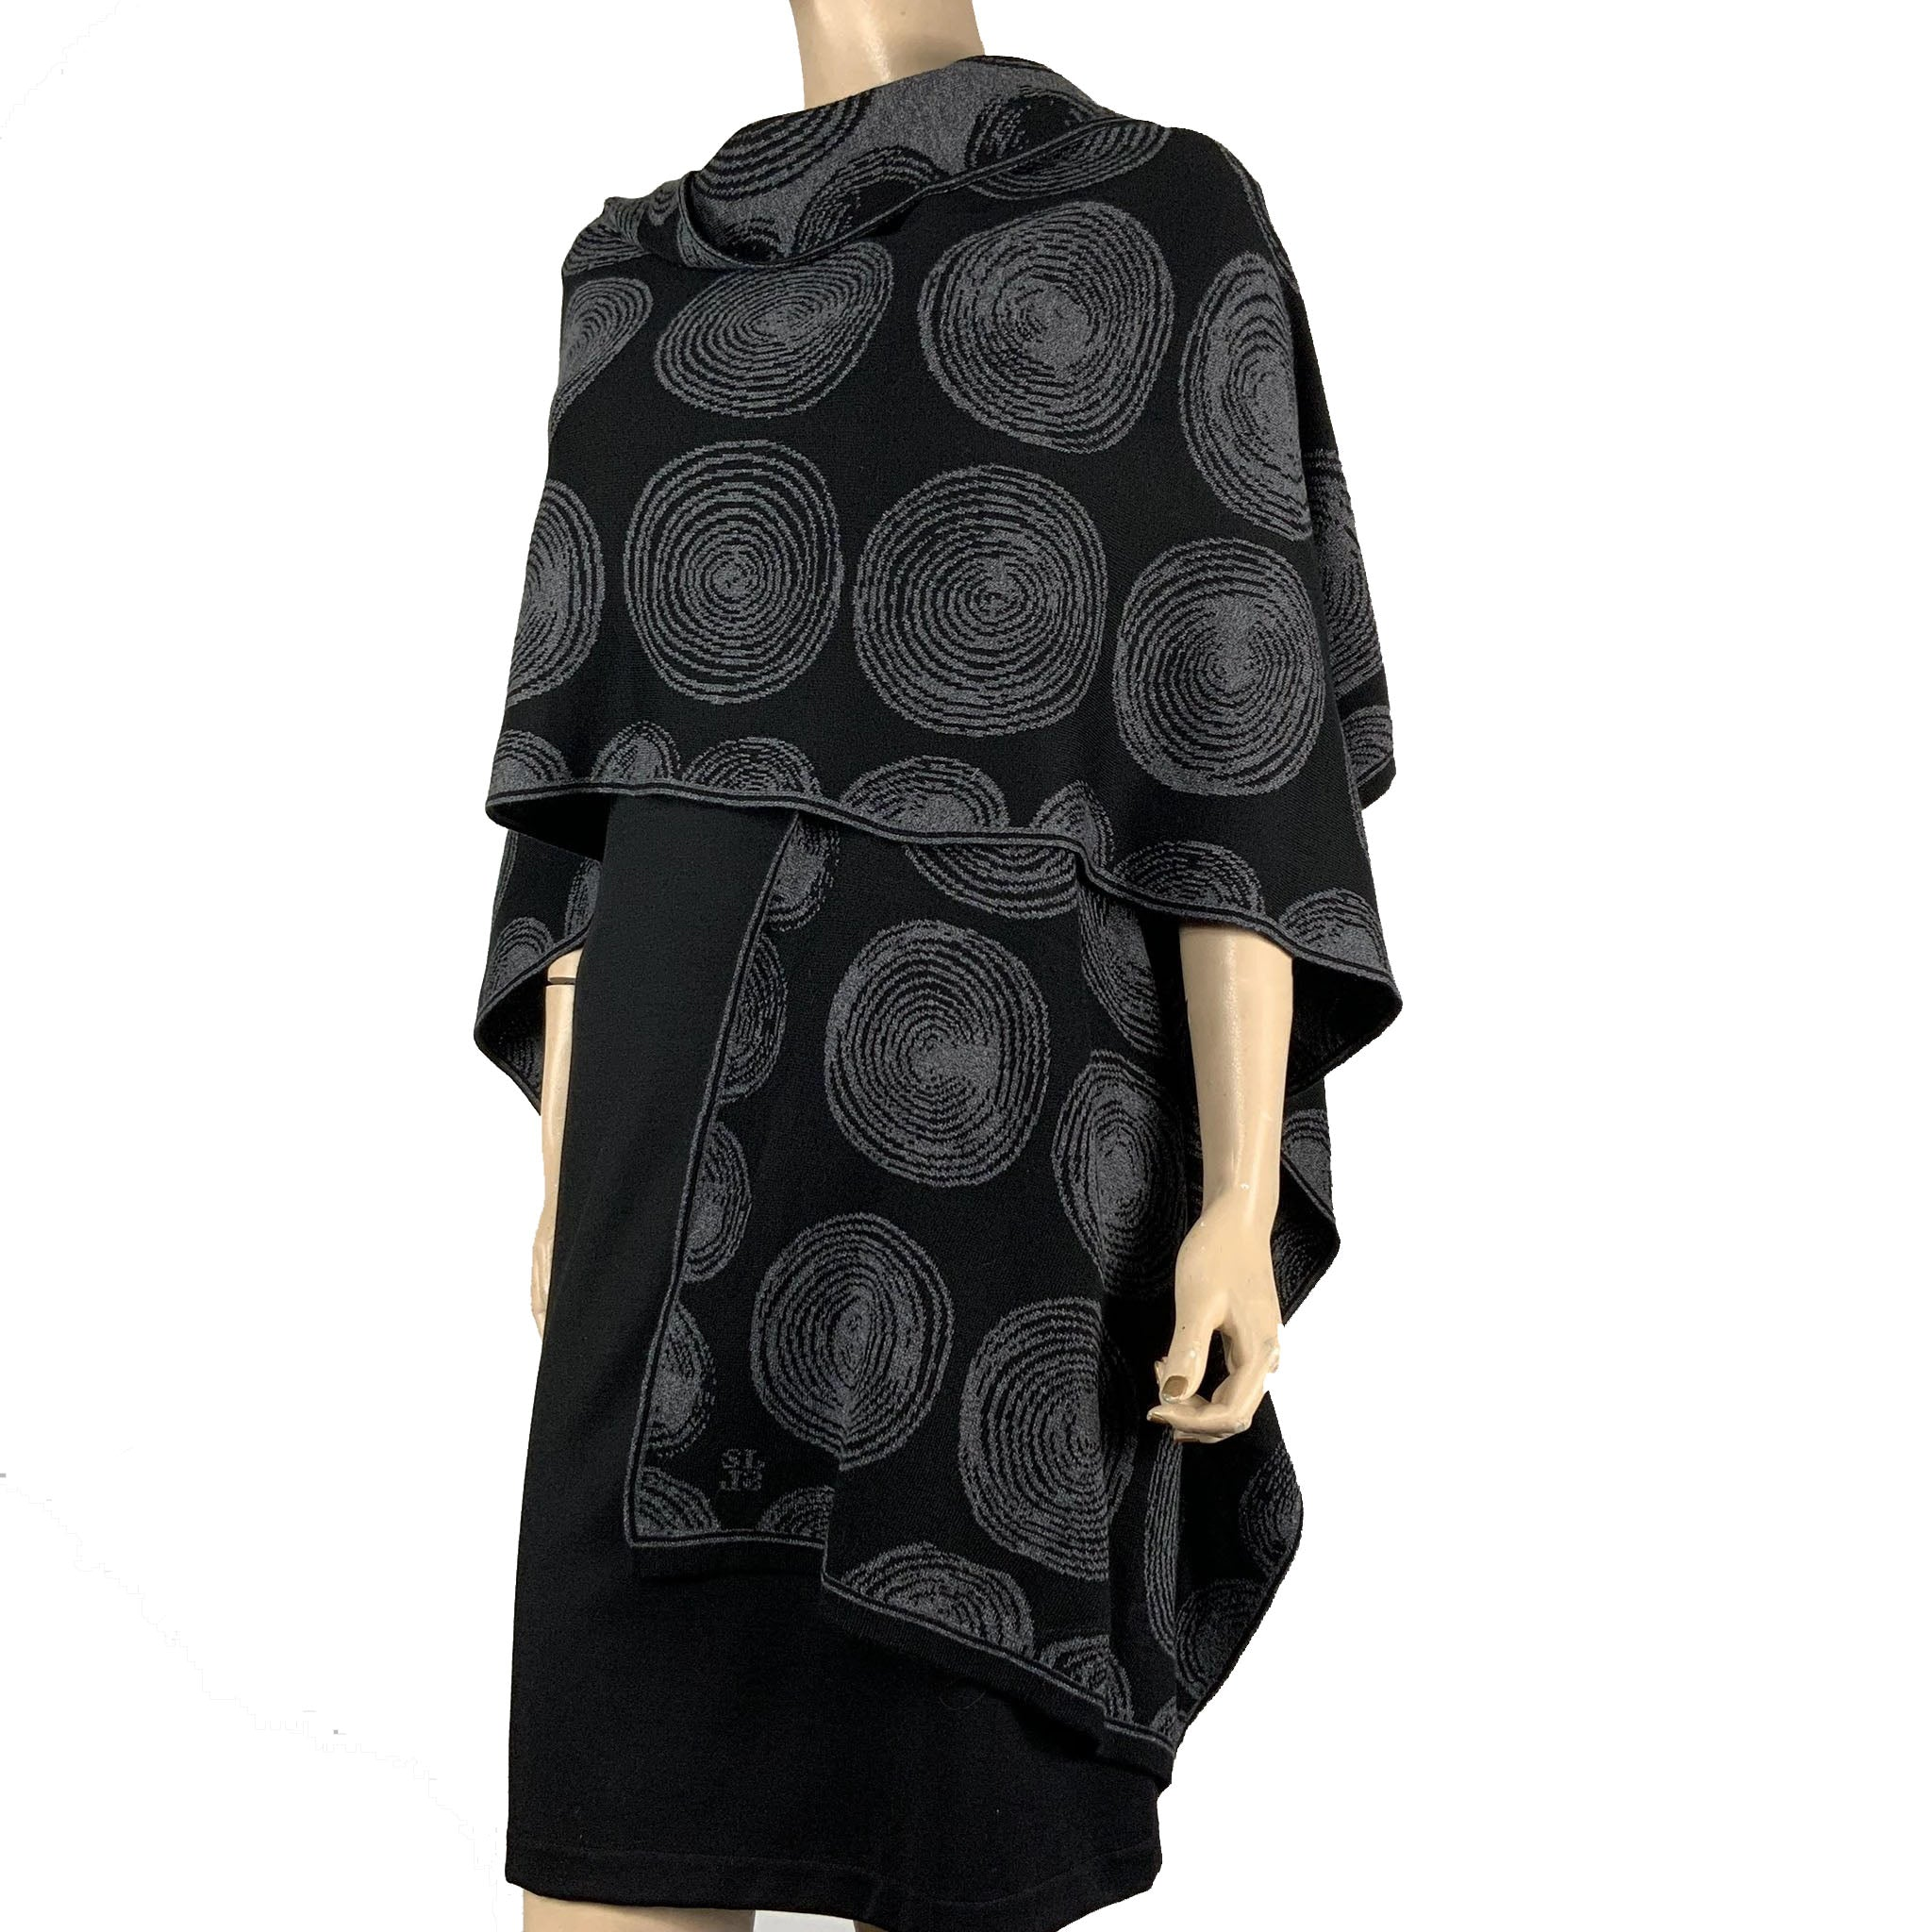 Spirals Cape Black & Charcoal Grey